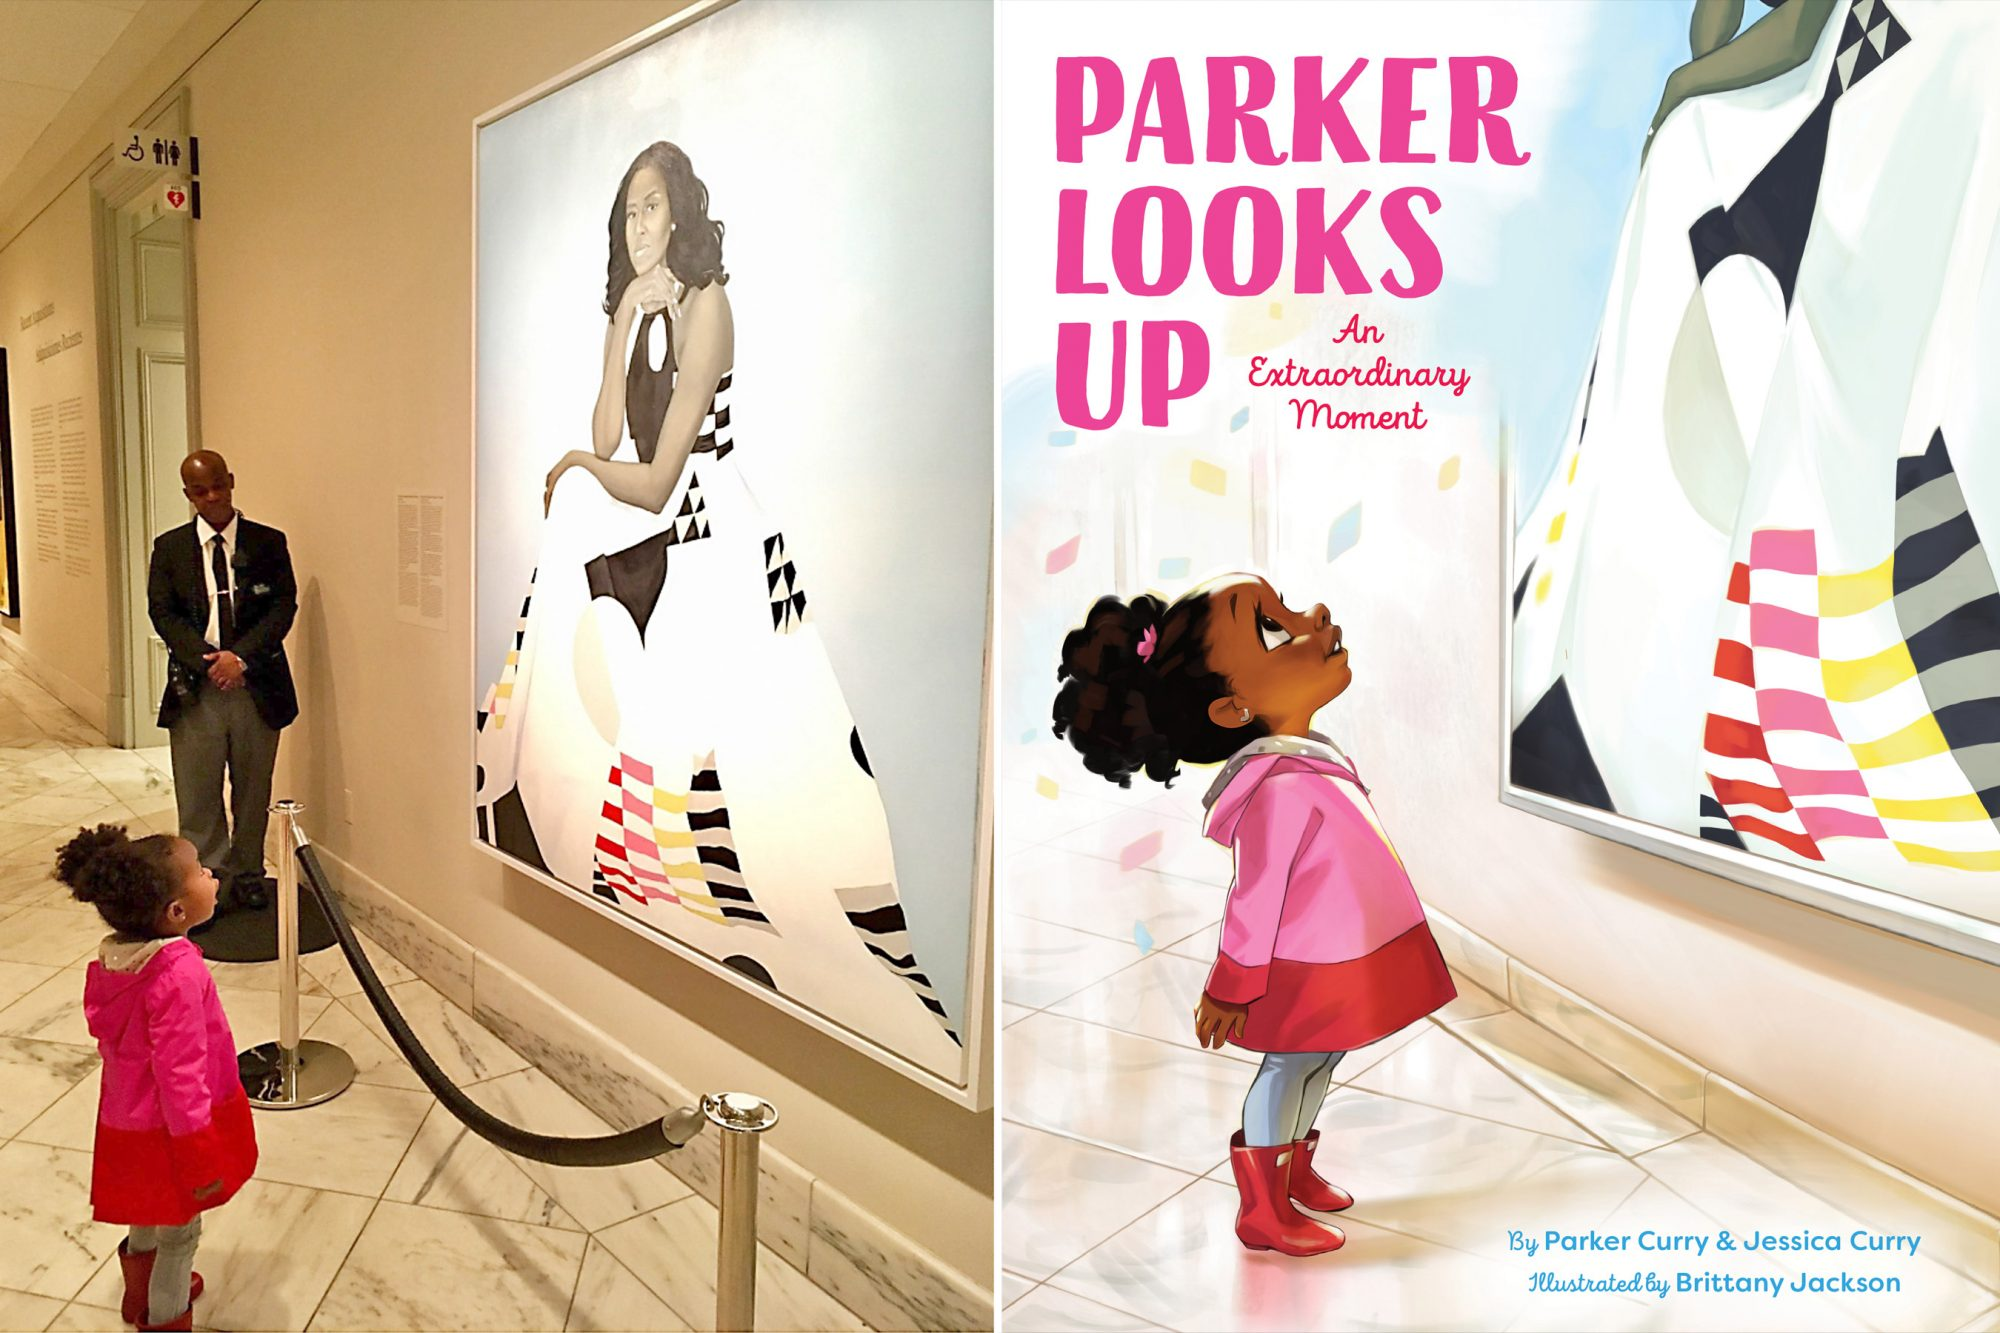 Parker Looks Up An Extraordinary Moment By Parker Curry and Jessica Curry